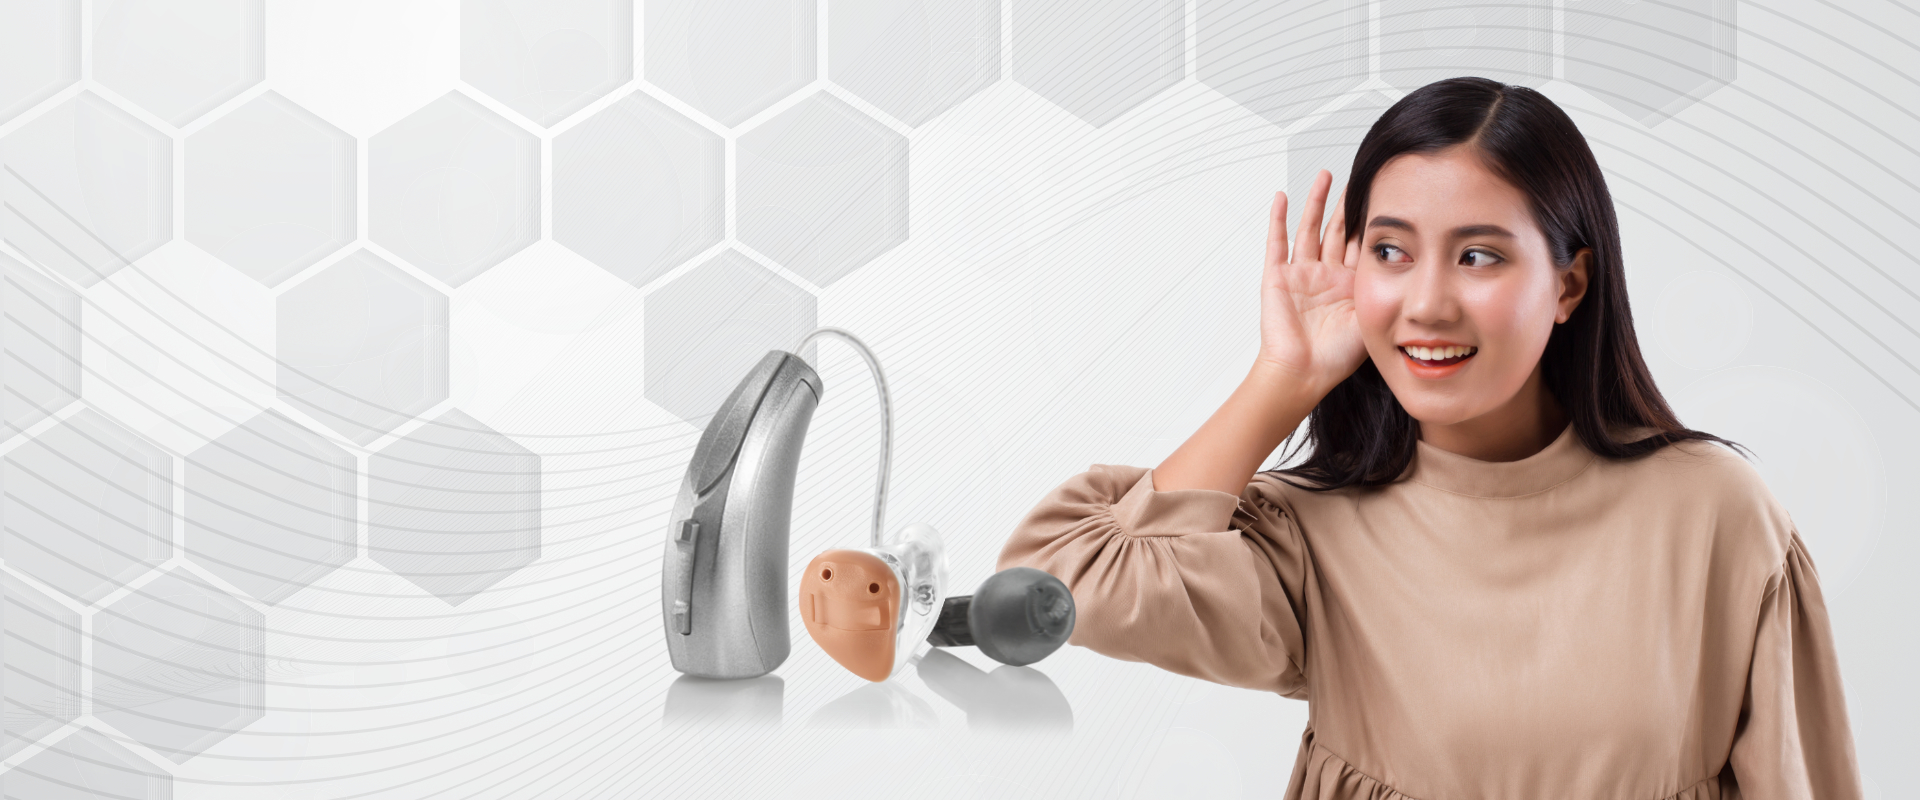 Hearing aid free 30 days trial